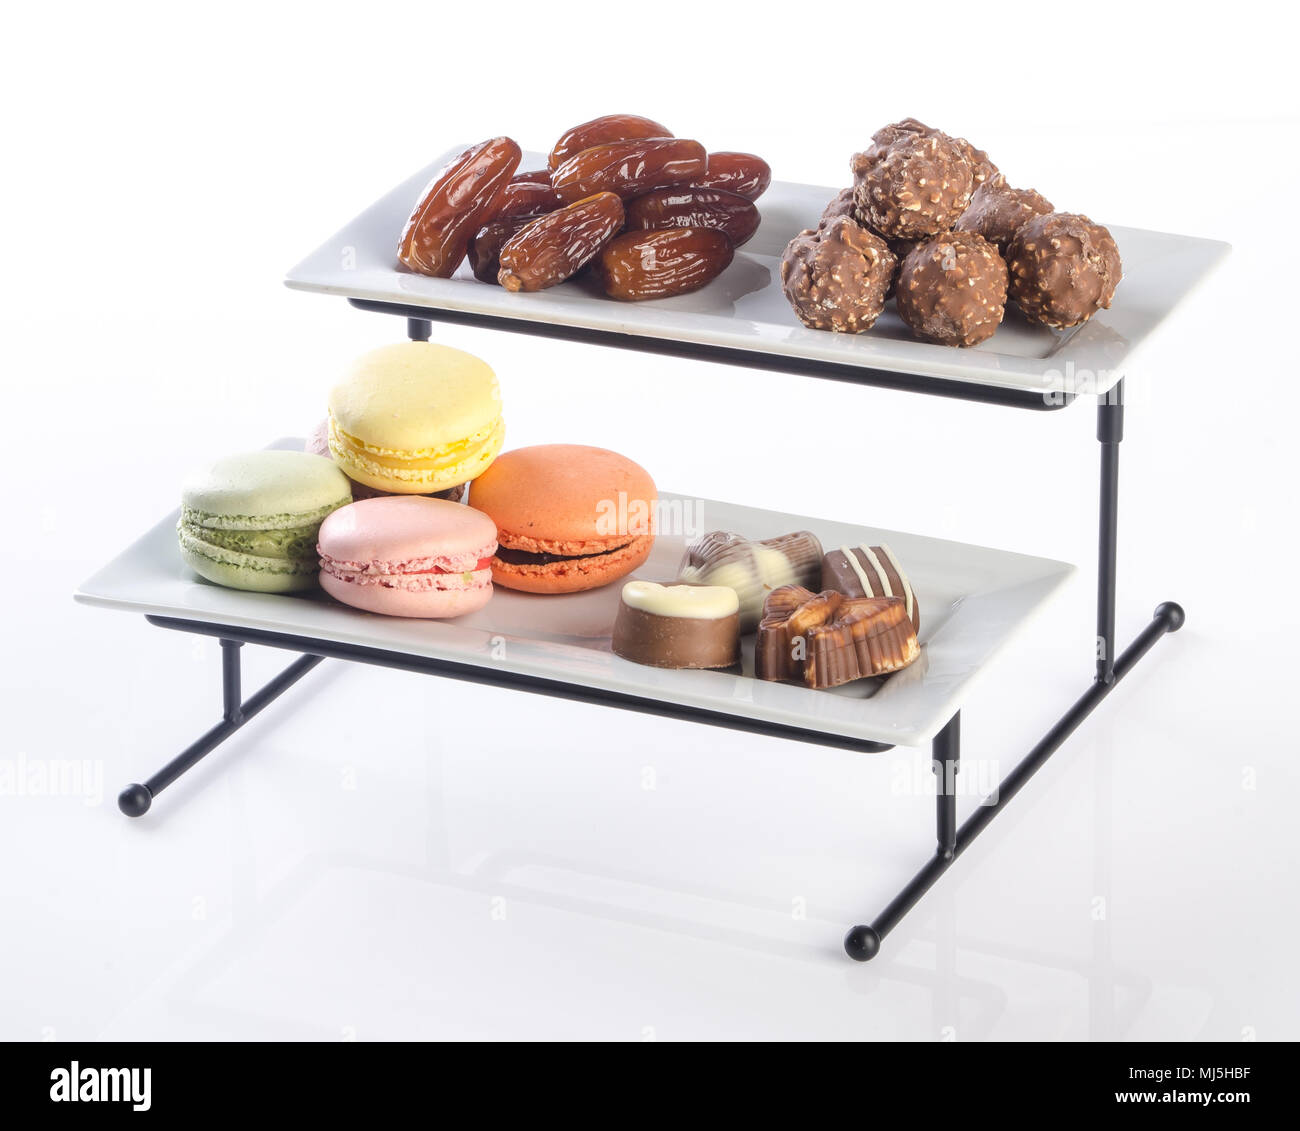 Tray Three Tier Serving Tray On A Background Stock Photo Alamy